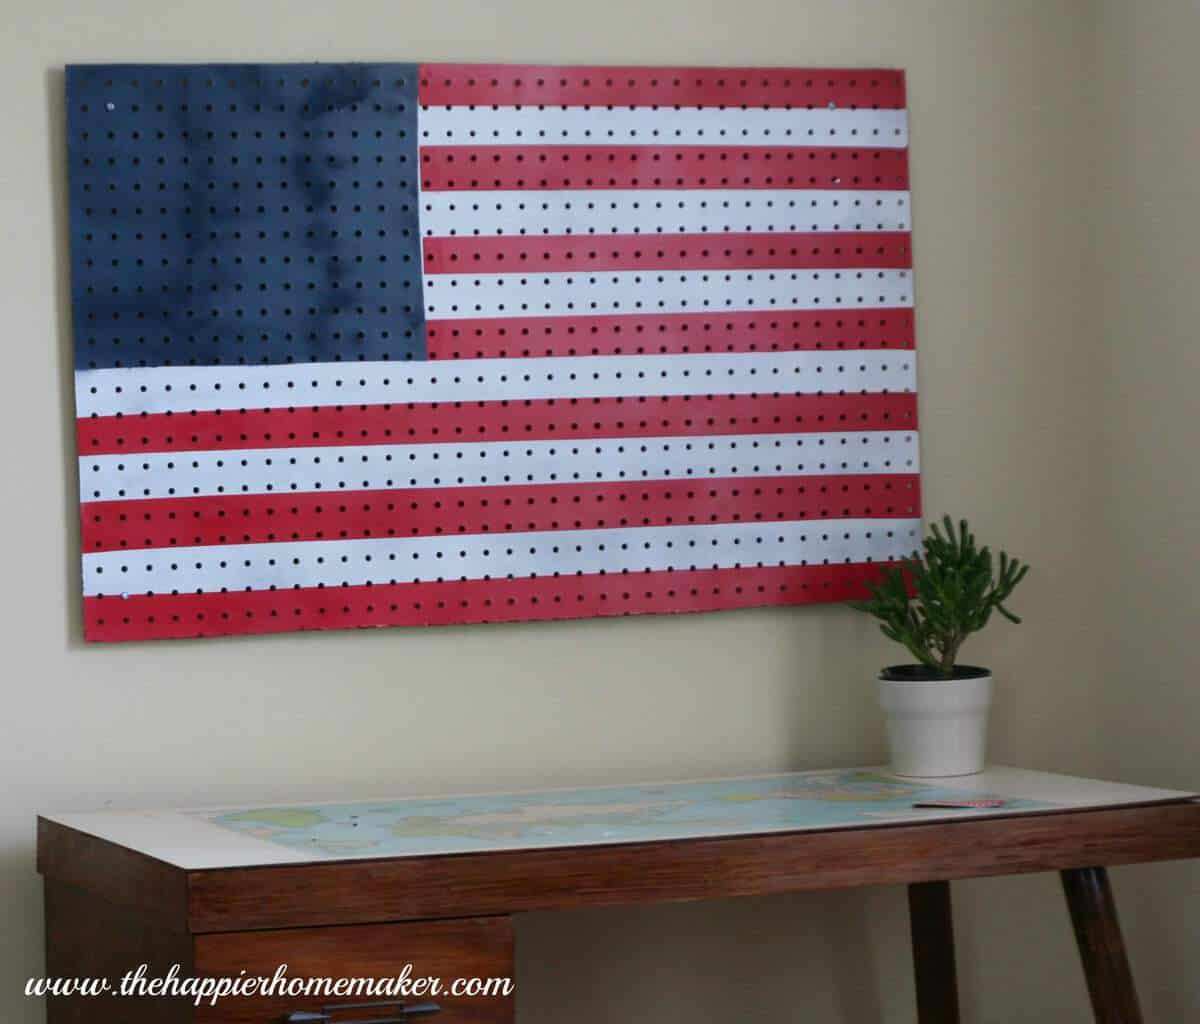 American flag pegboard over a desk with a small plant